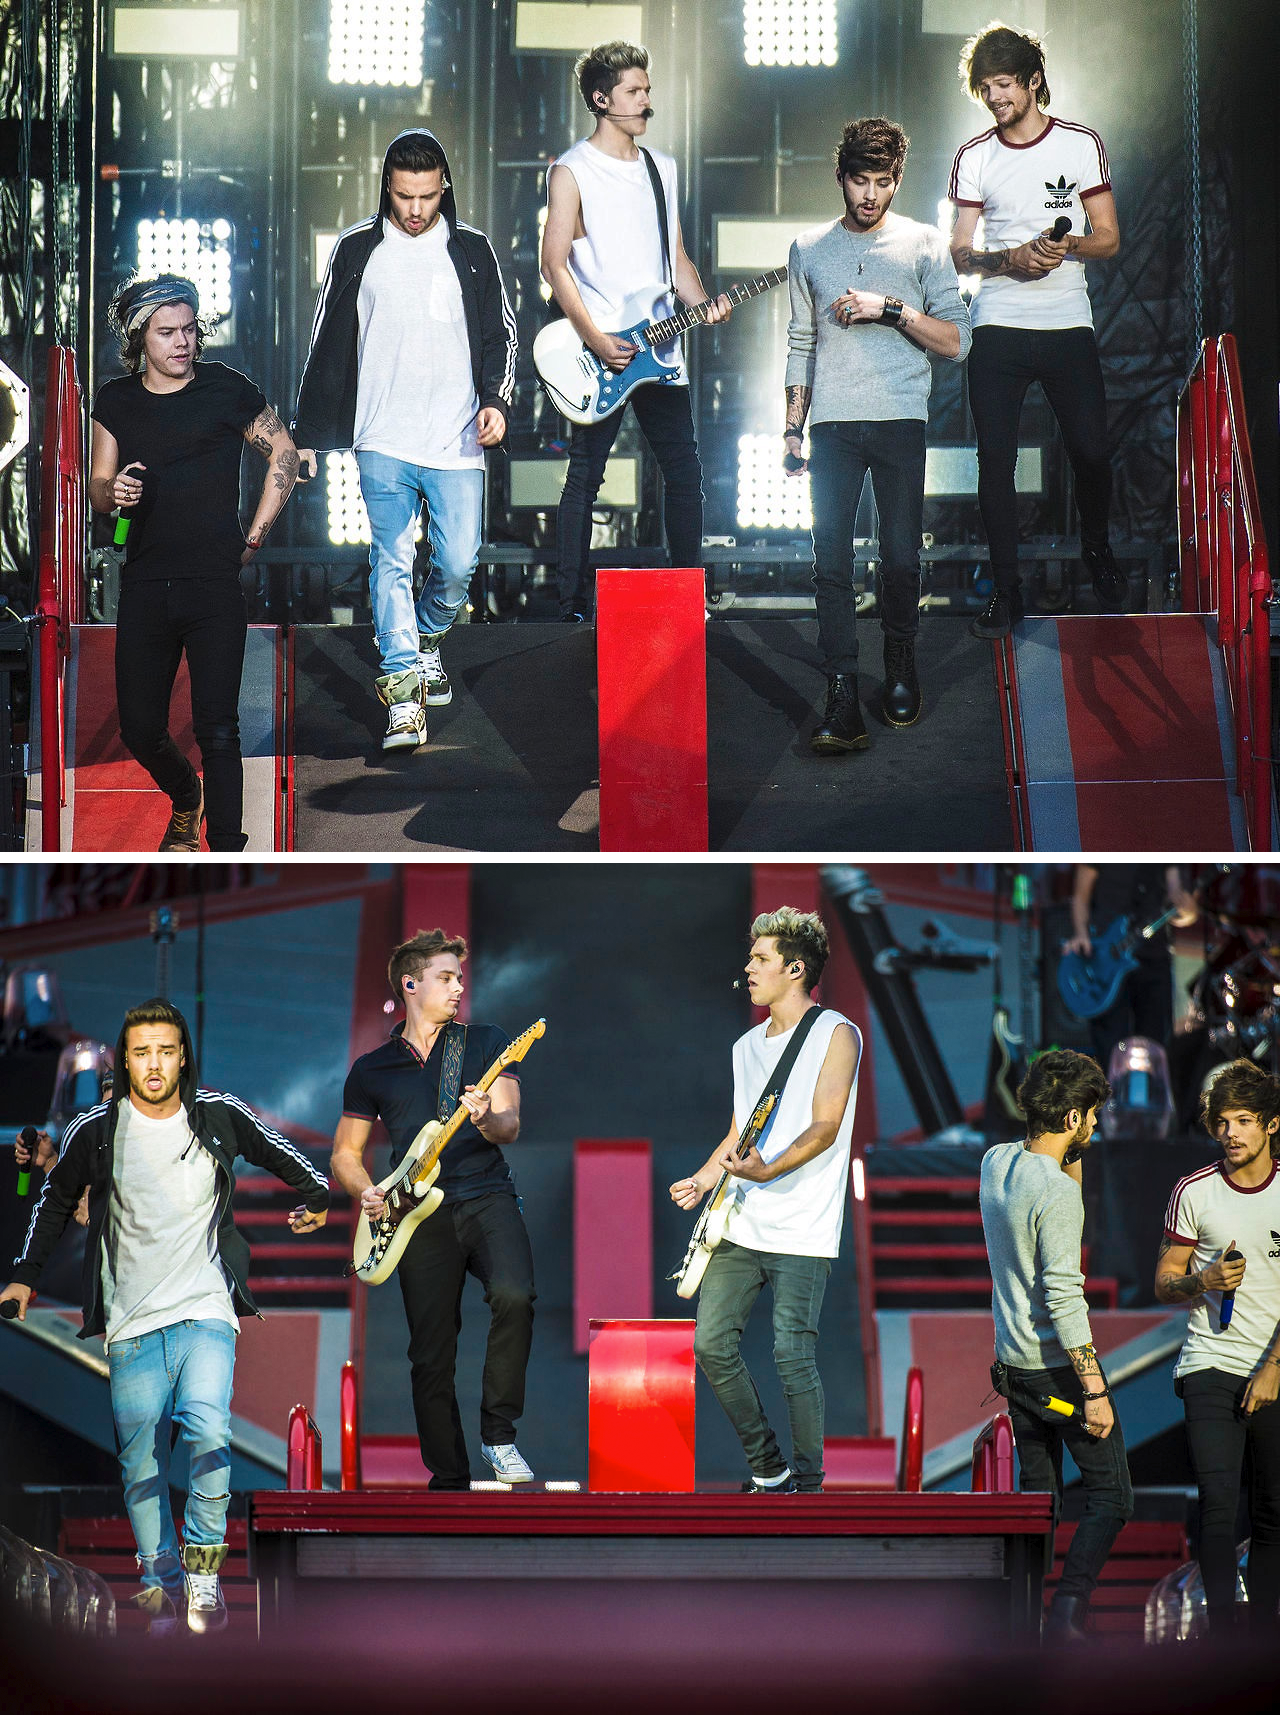 One Direction(6/16/14)